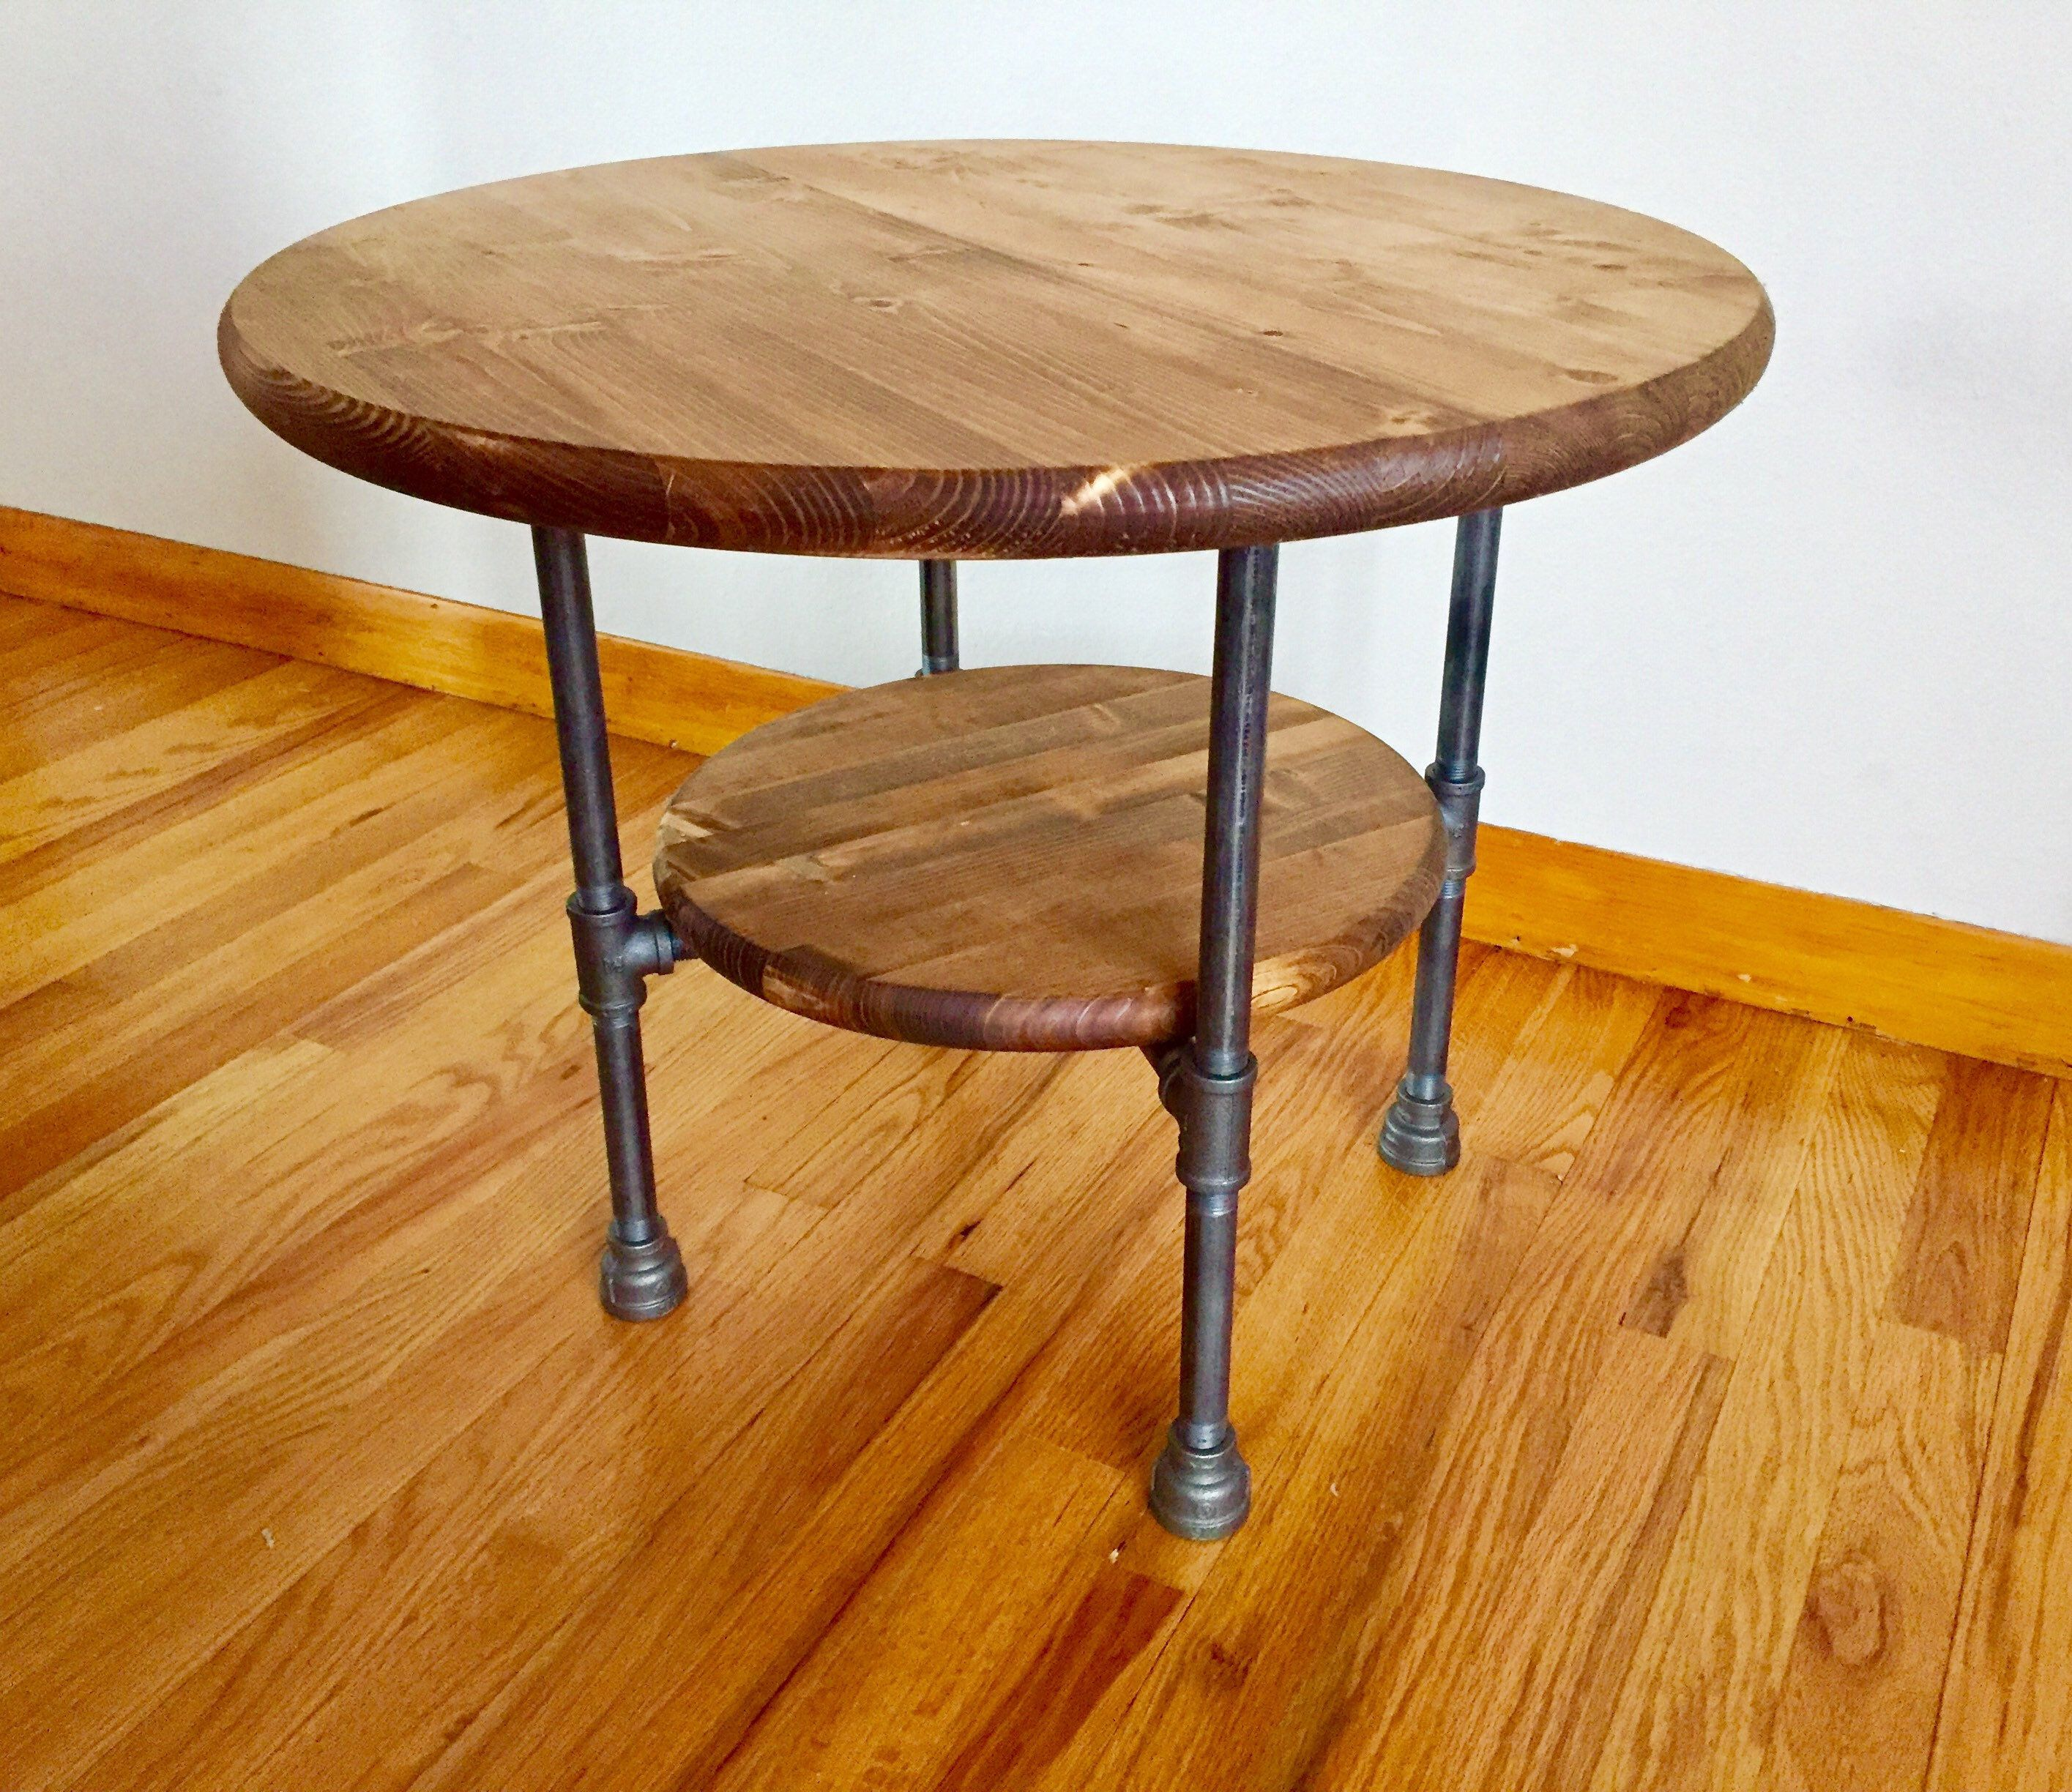 Prime Black Pipe End Table Diy Parts Kit With Optional Creativecarmelina Interior Chair Design Creativecarmelinacom